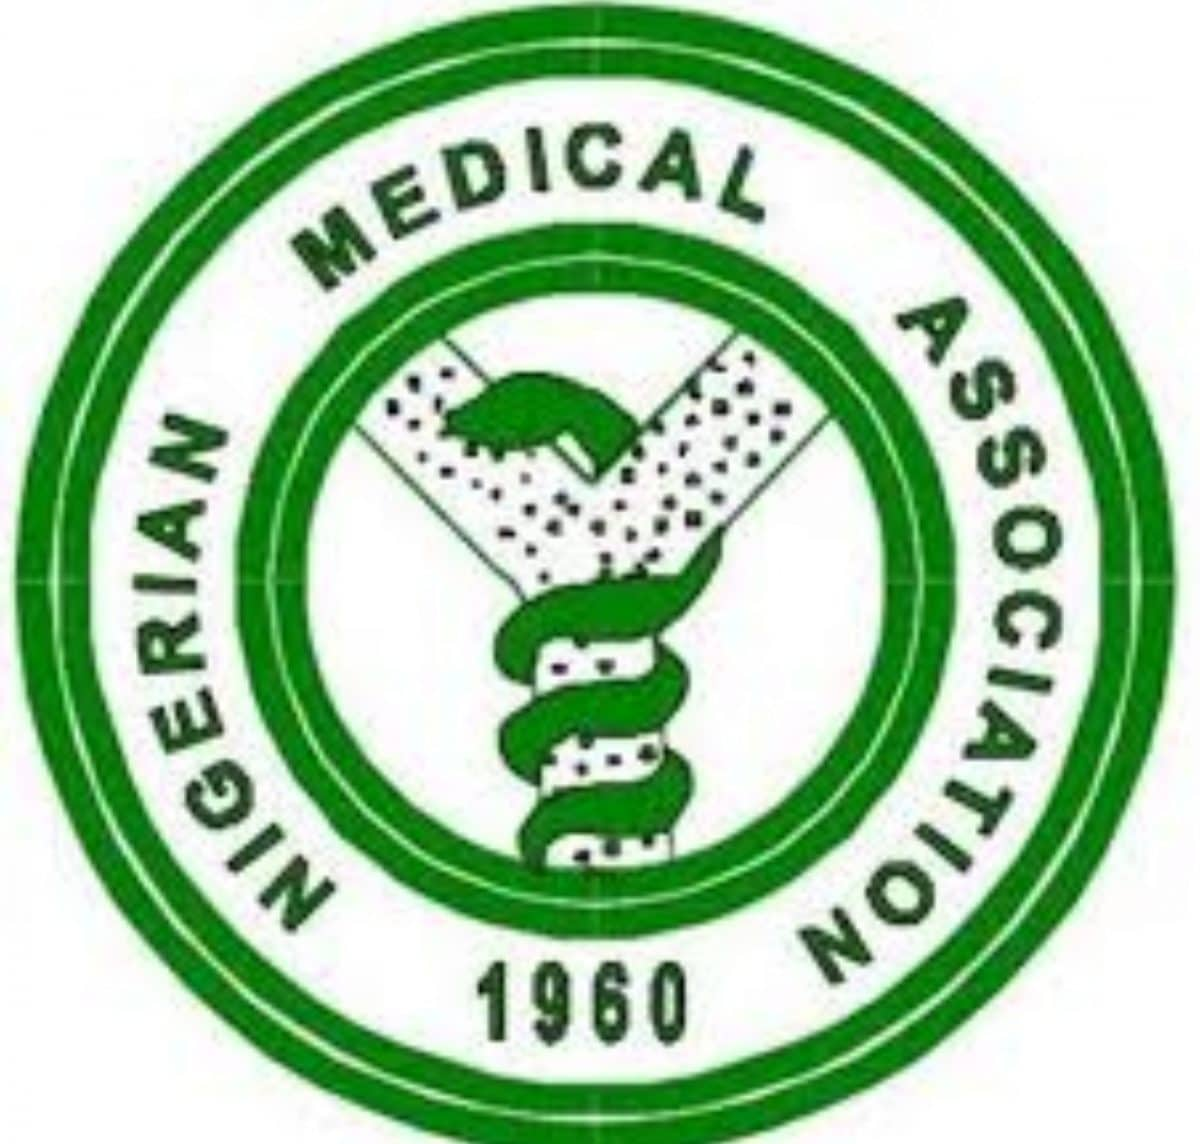 Nma Tertiary Health Trust Fund